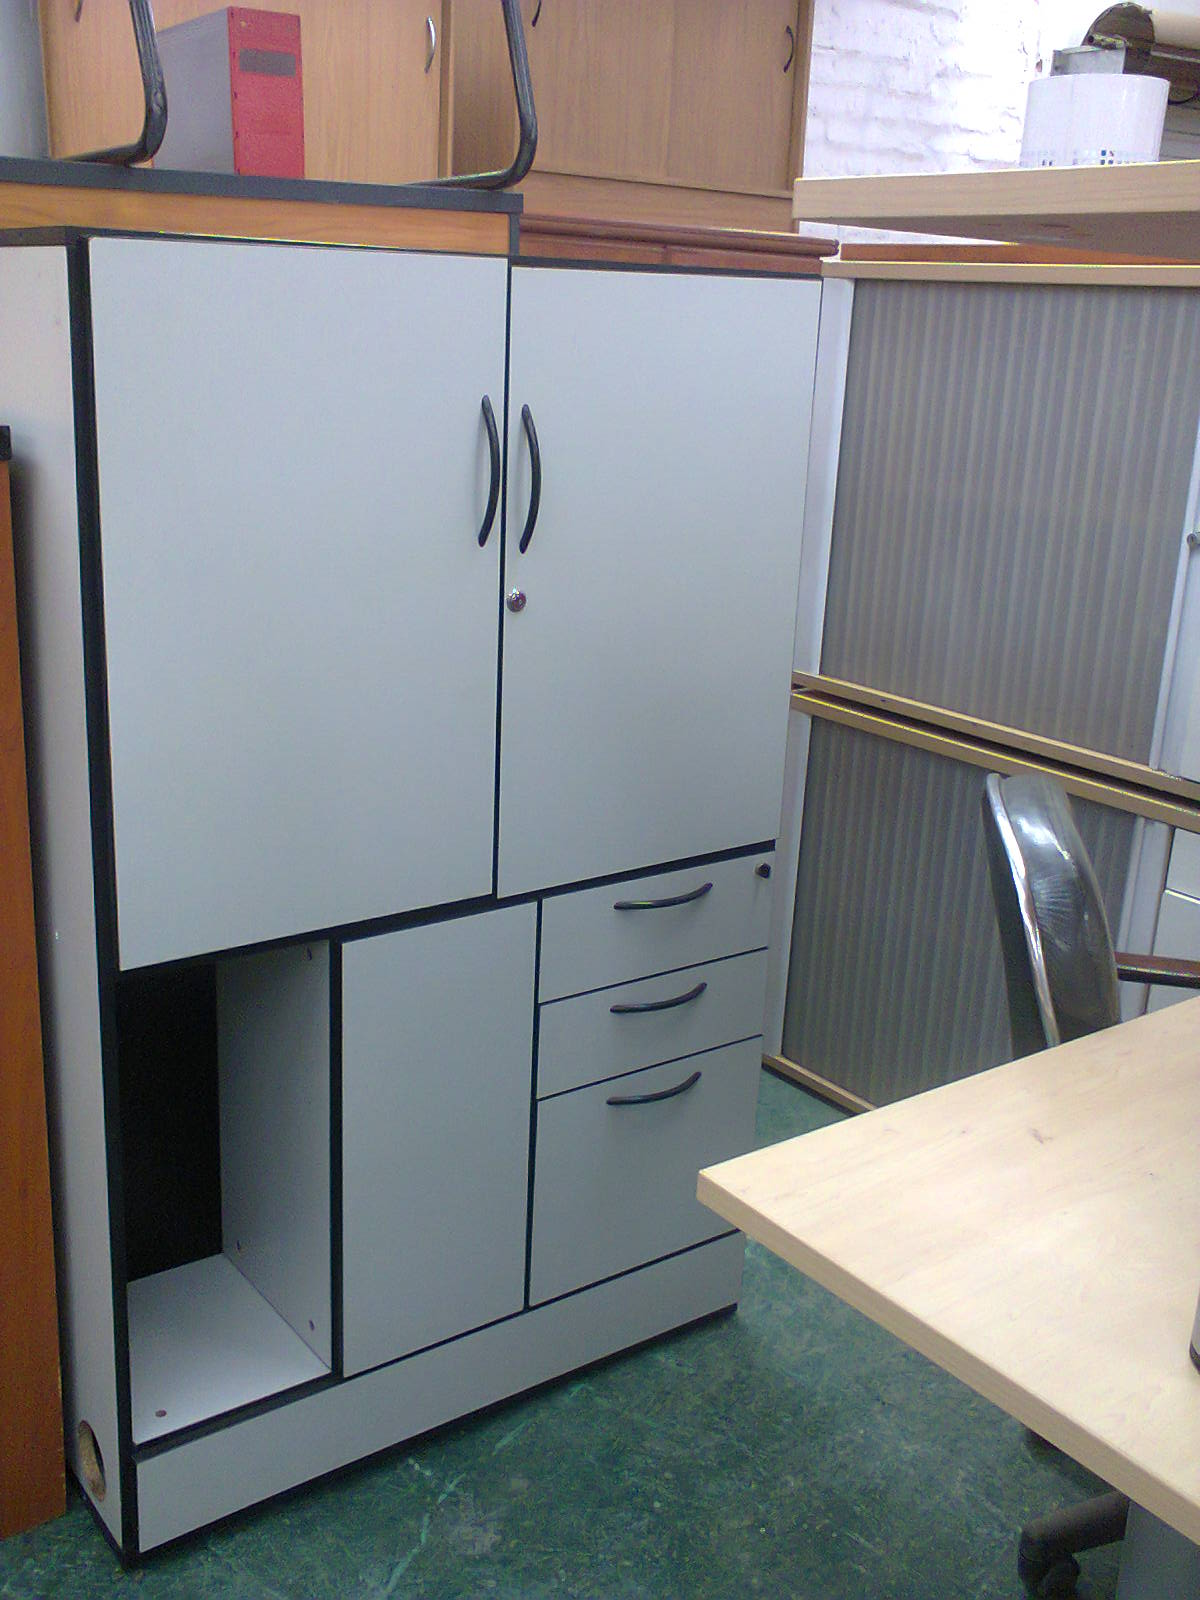 OFFICE OR ROOM DIVIDERS with cupboards, drawers and shelves - used WHITE like new